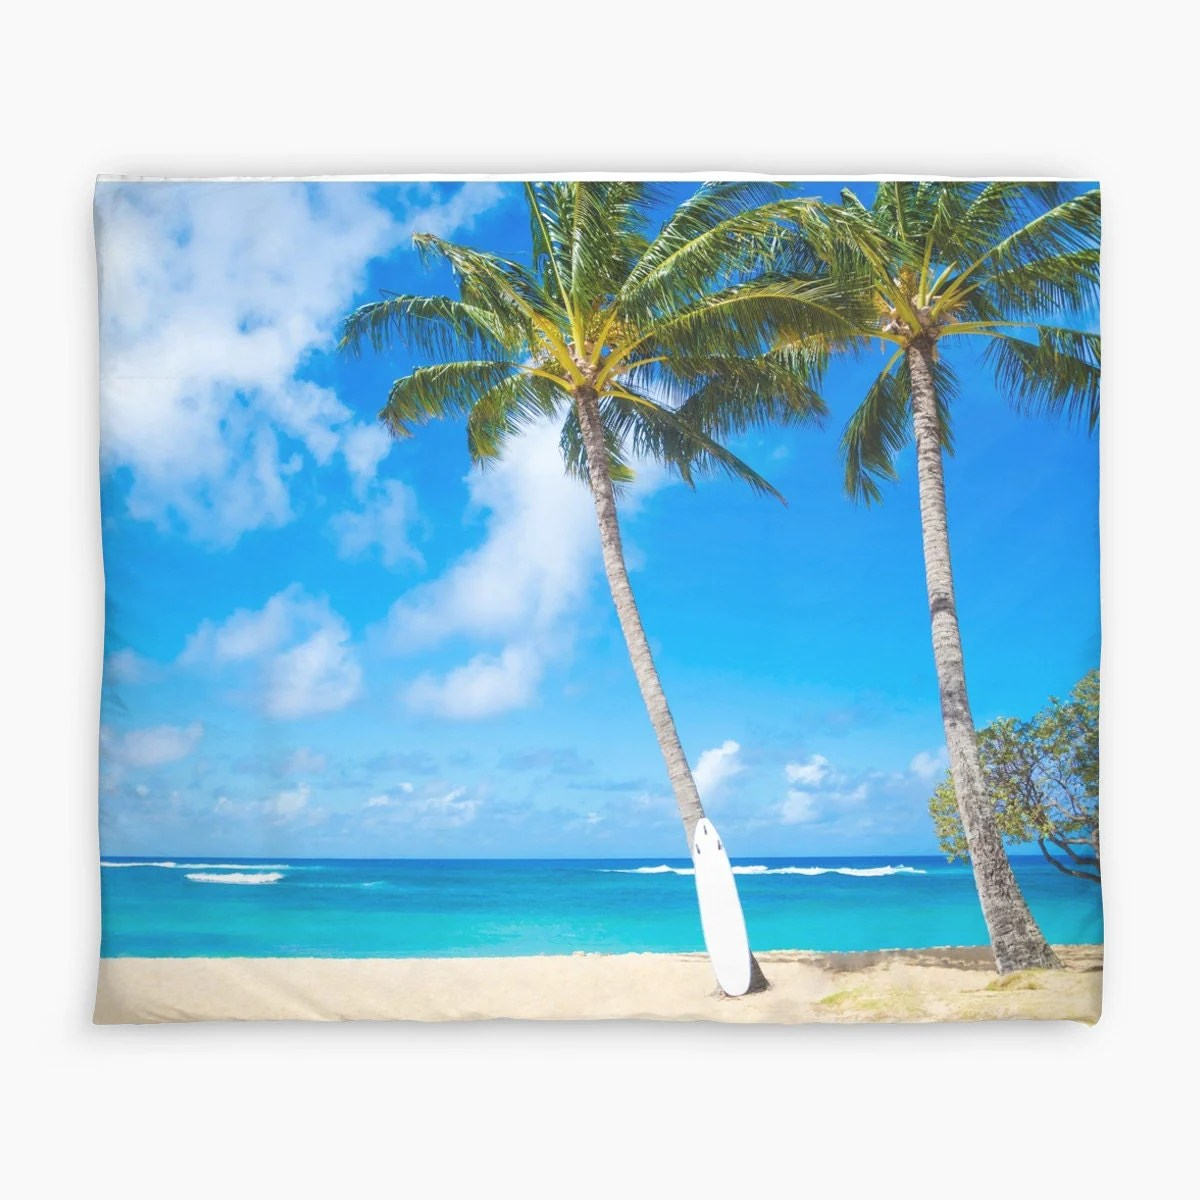 Parure De Couette 240x260 Palm Duvet Cover With Palm Tree And Surfboard In Hawaii Water